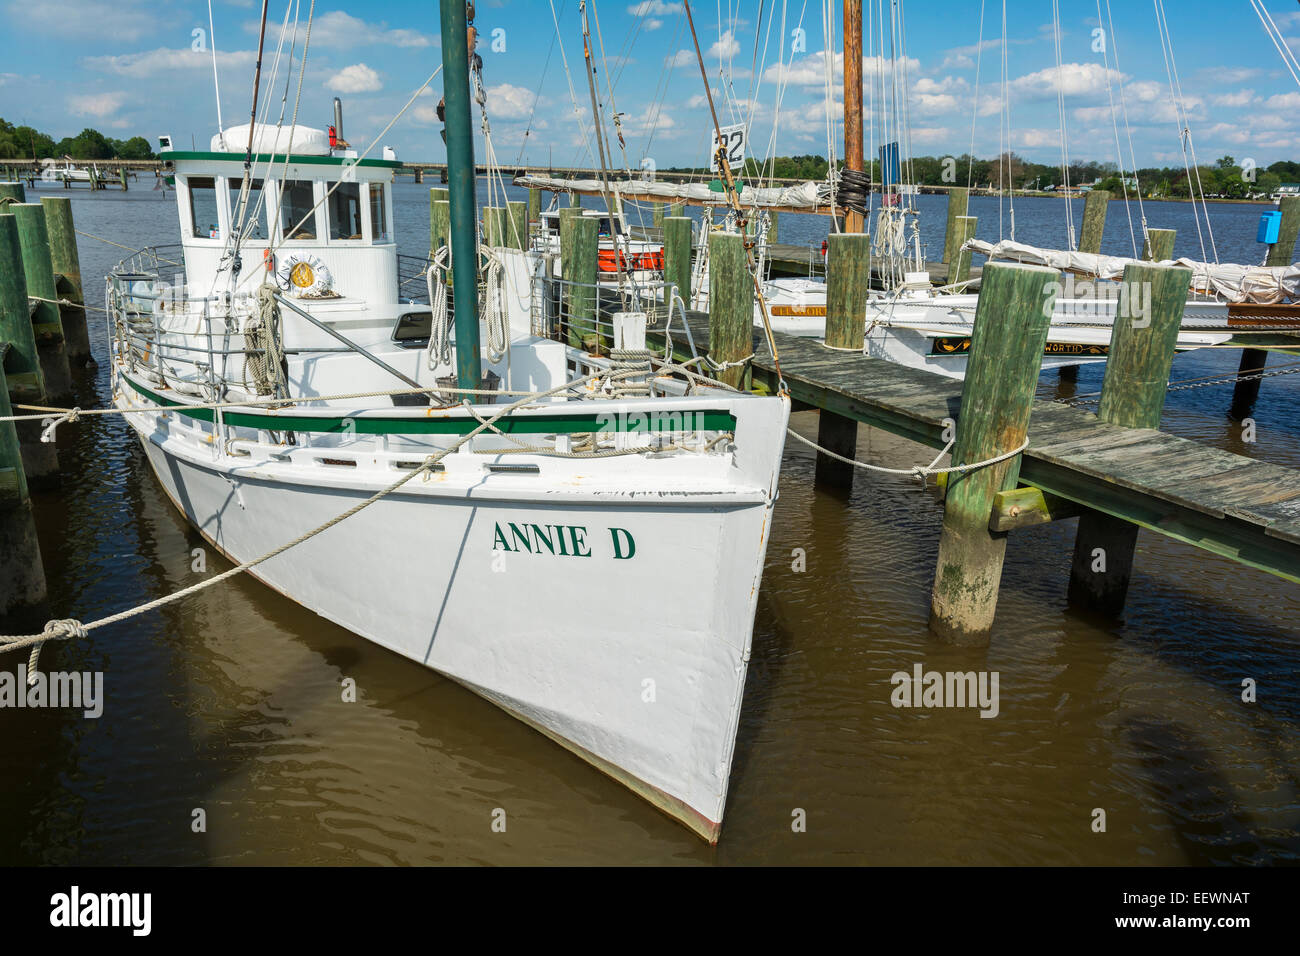 Maryland, Eastern Shore, Chestertown, oyster buy boat Annie D. built 1957, now used for school educational programs - Stock Image